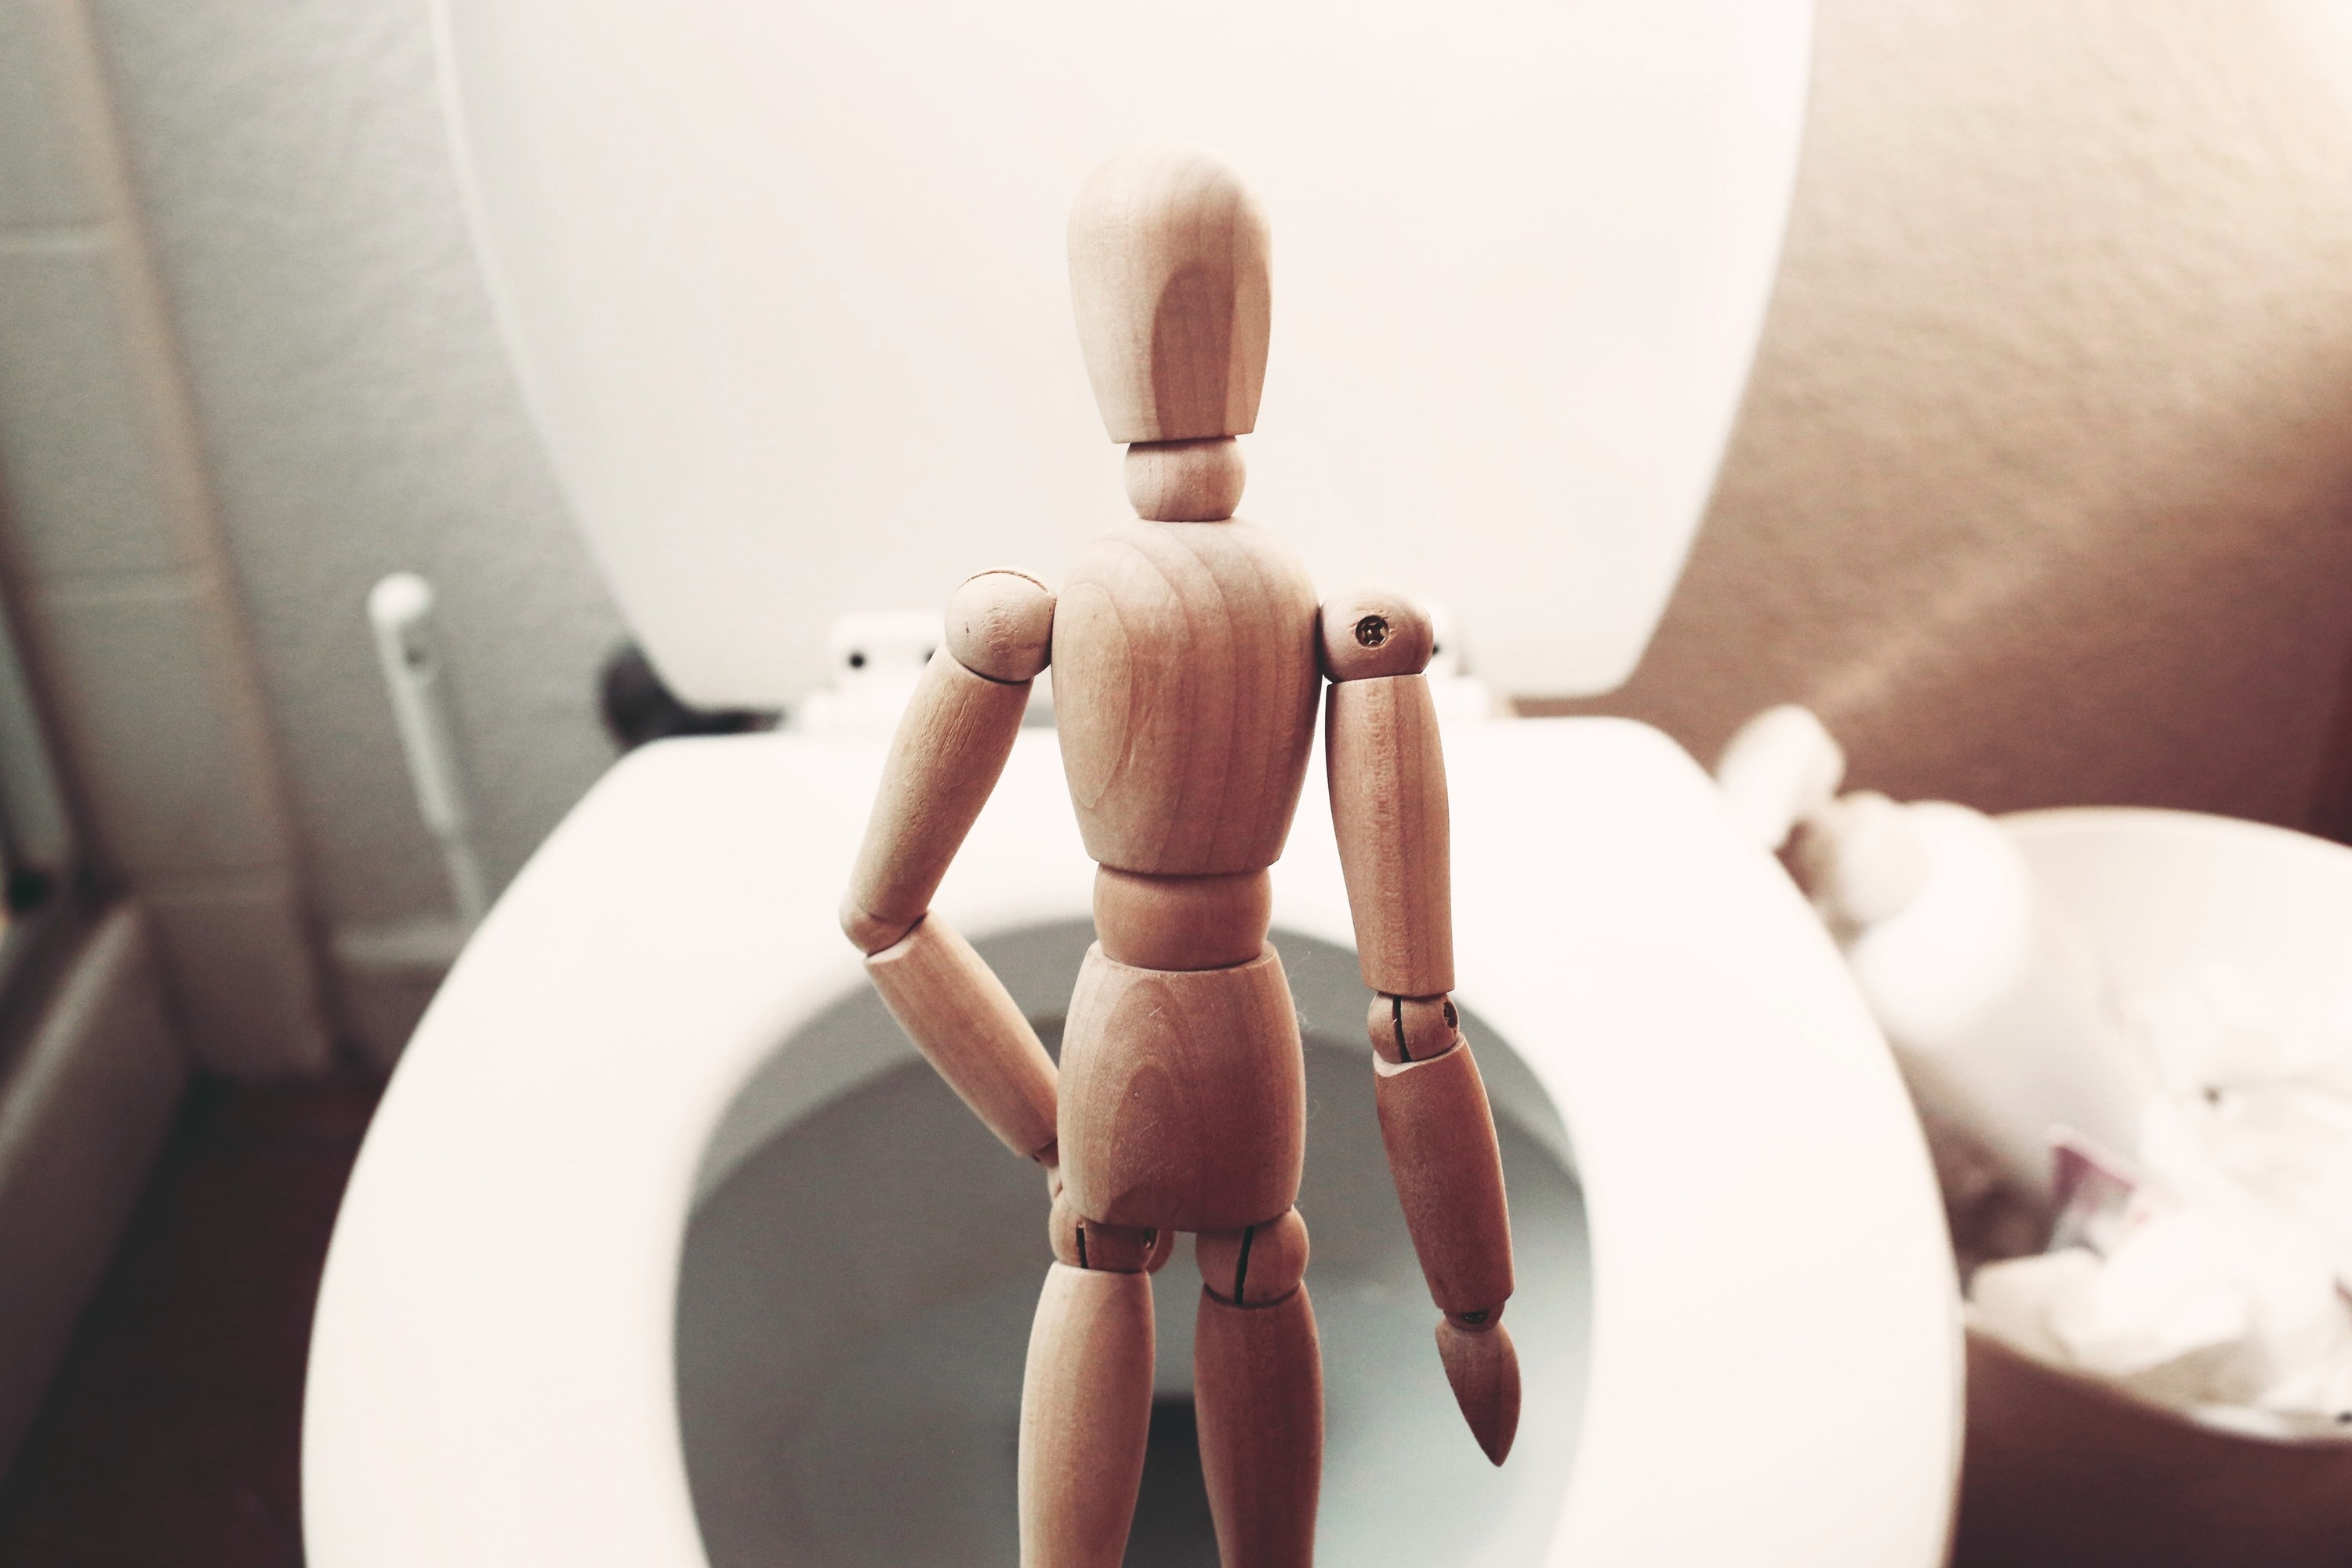 A wooden mannequin is seen standing over a toilet bowl